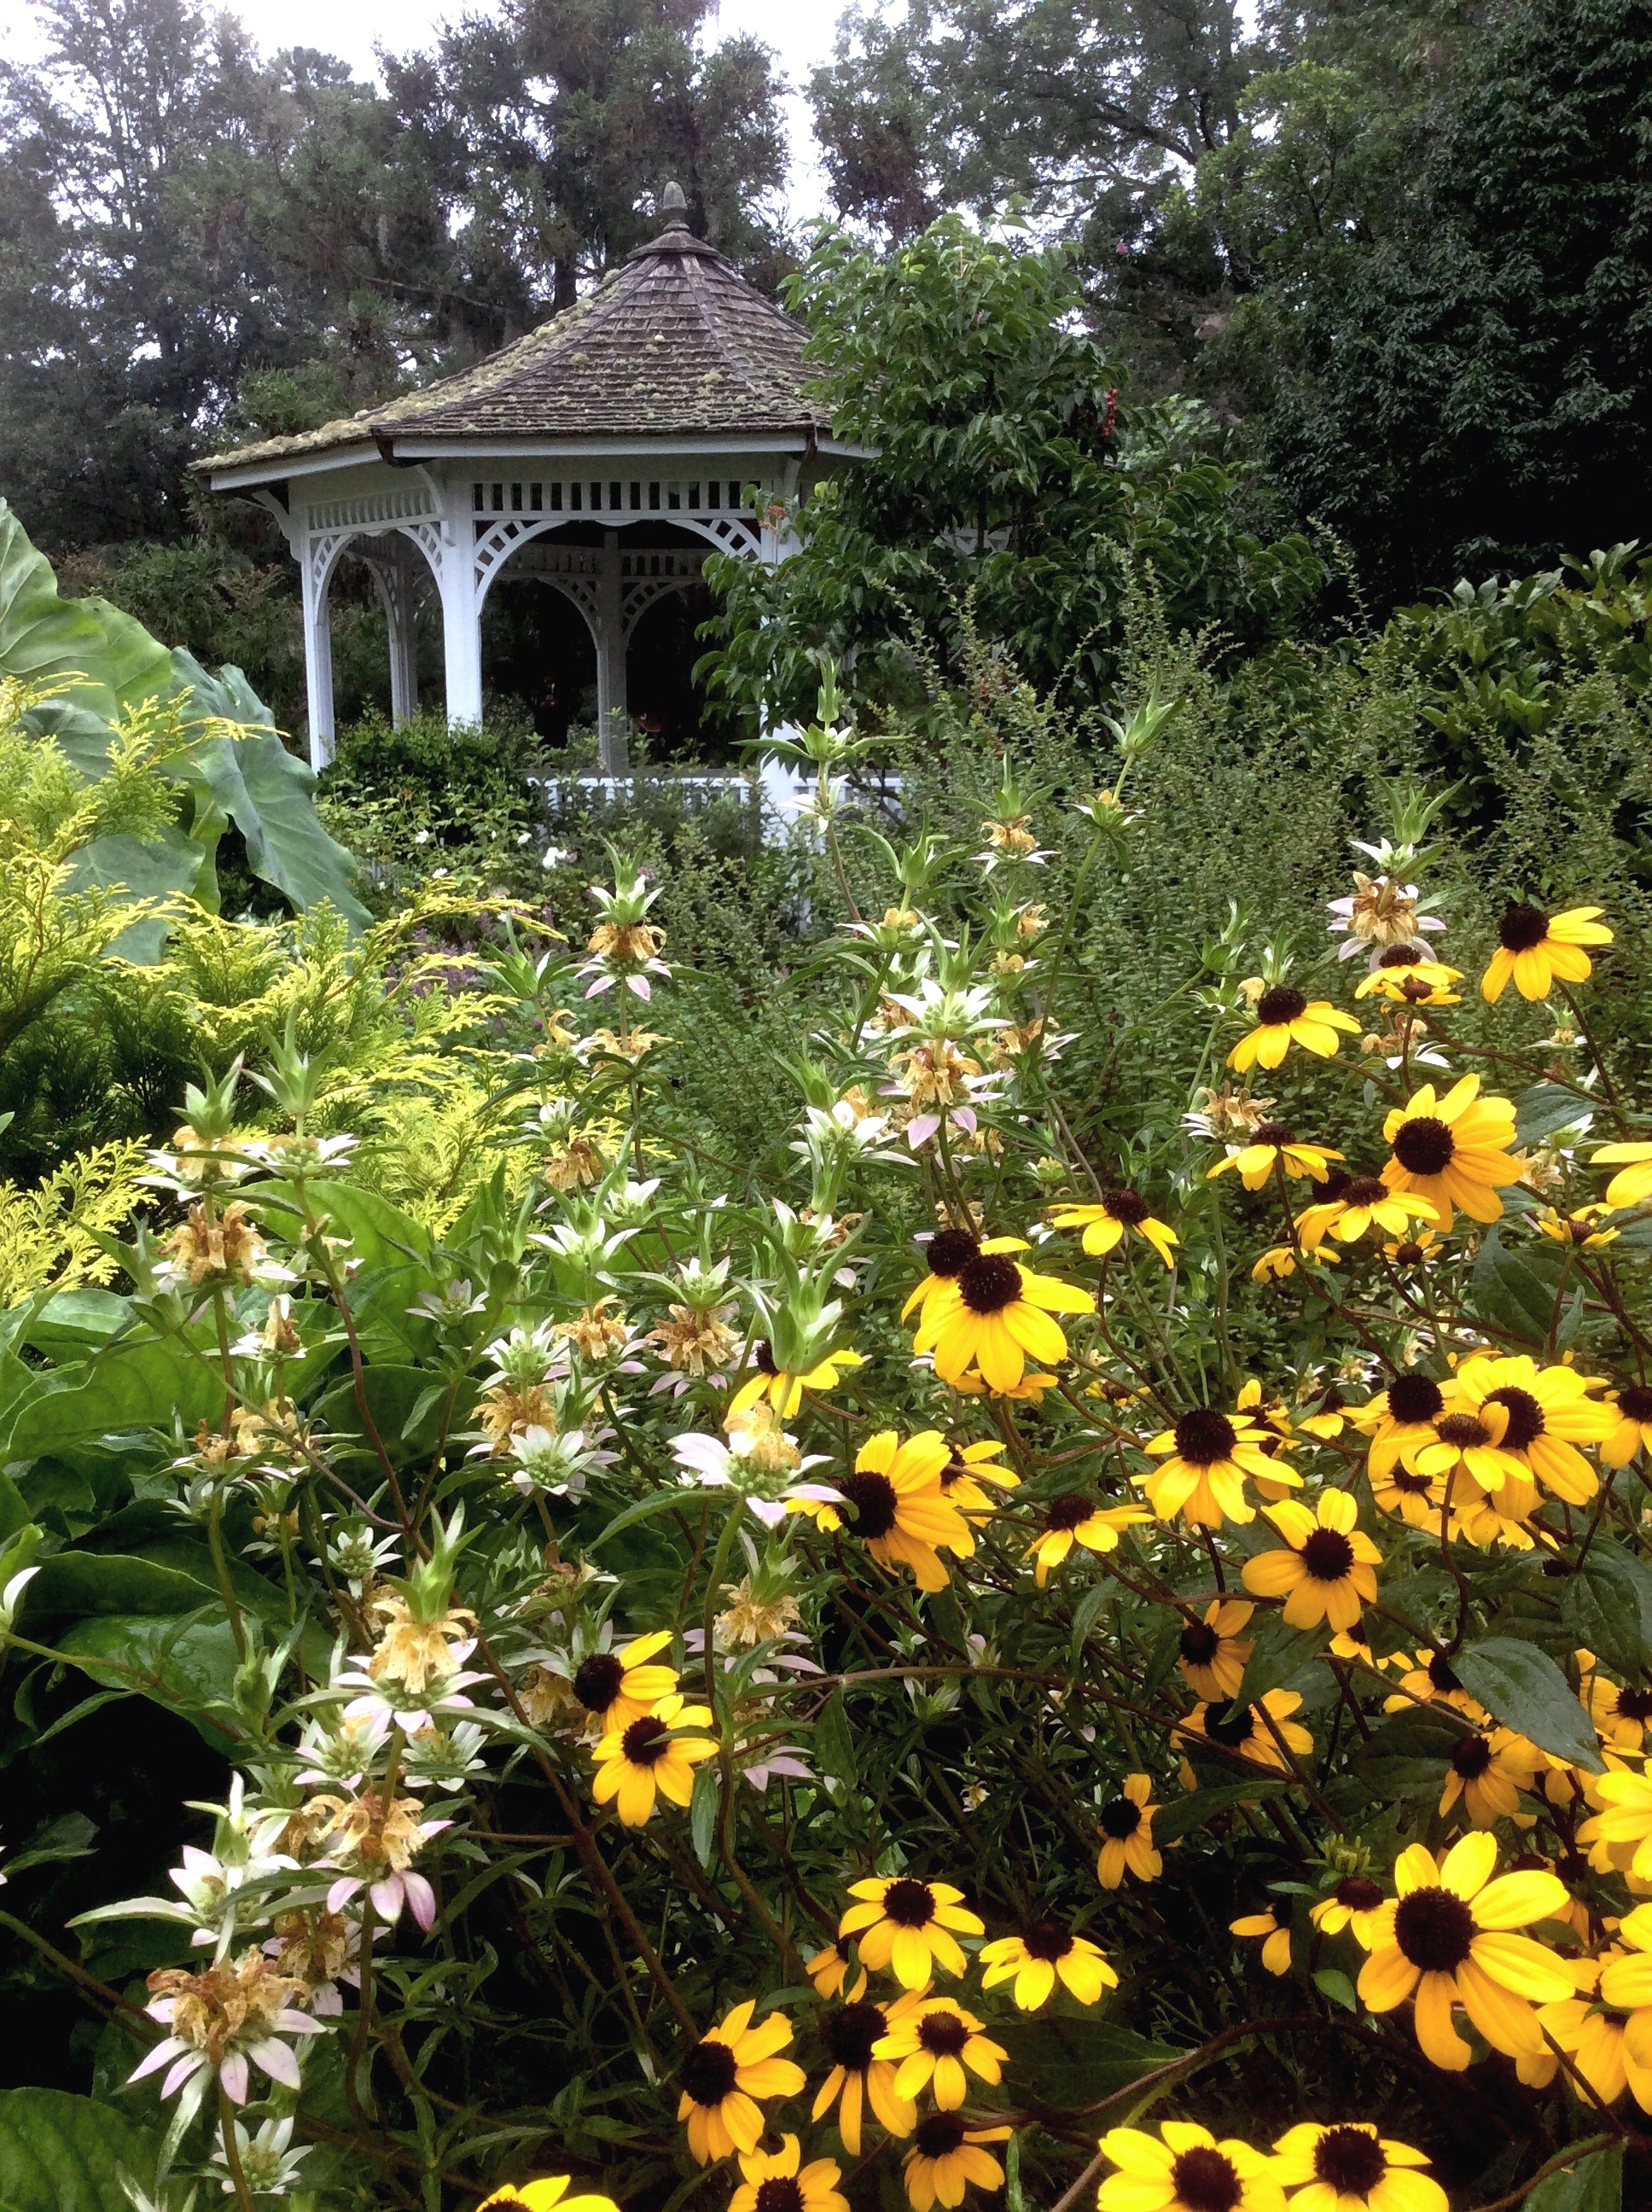 Brown-eyed Susan grows alongside spotted monarda in the Cottage Garden at the Coastal Georgia Botanical Gardens in Savannah.